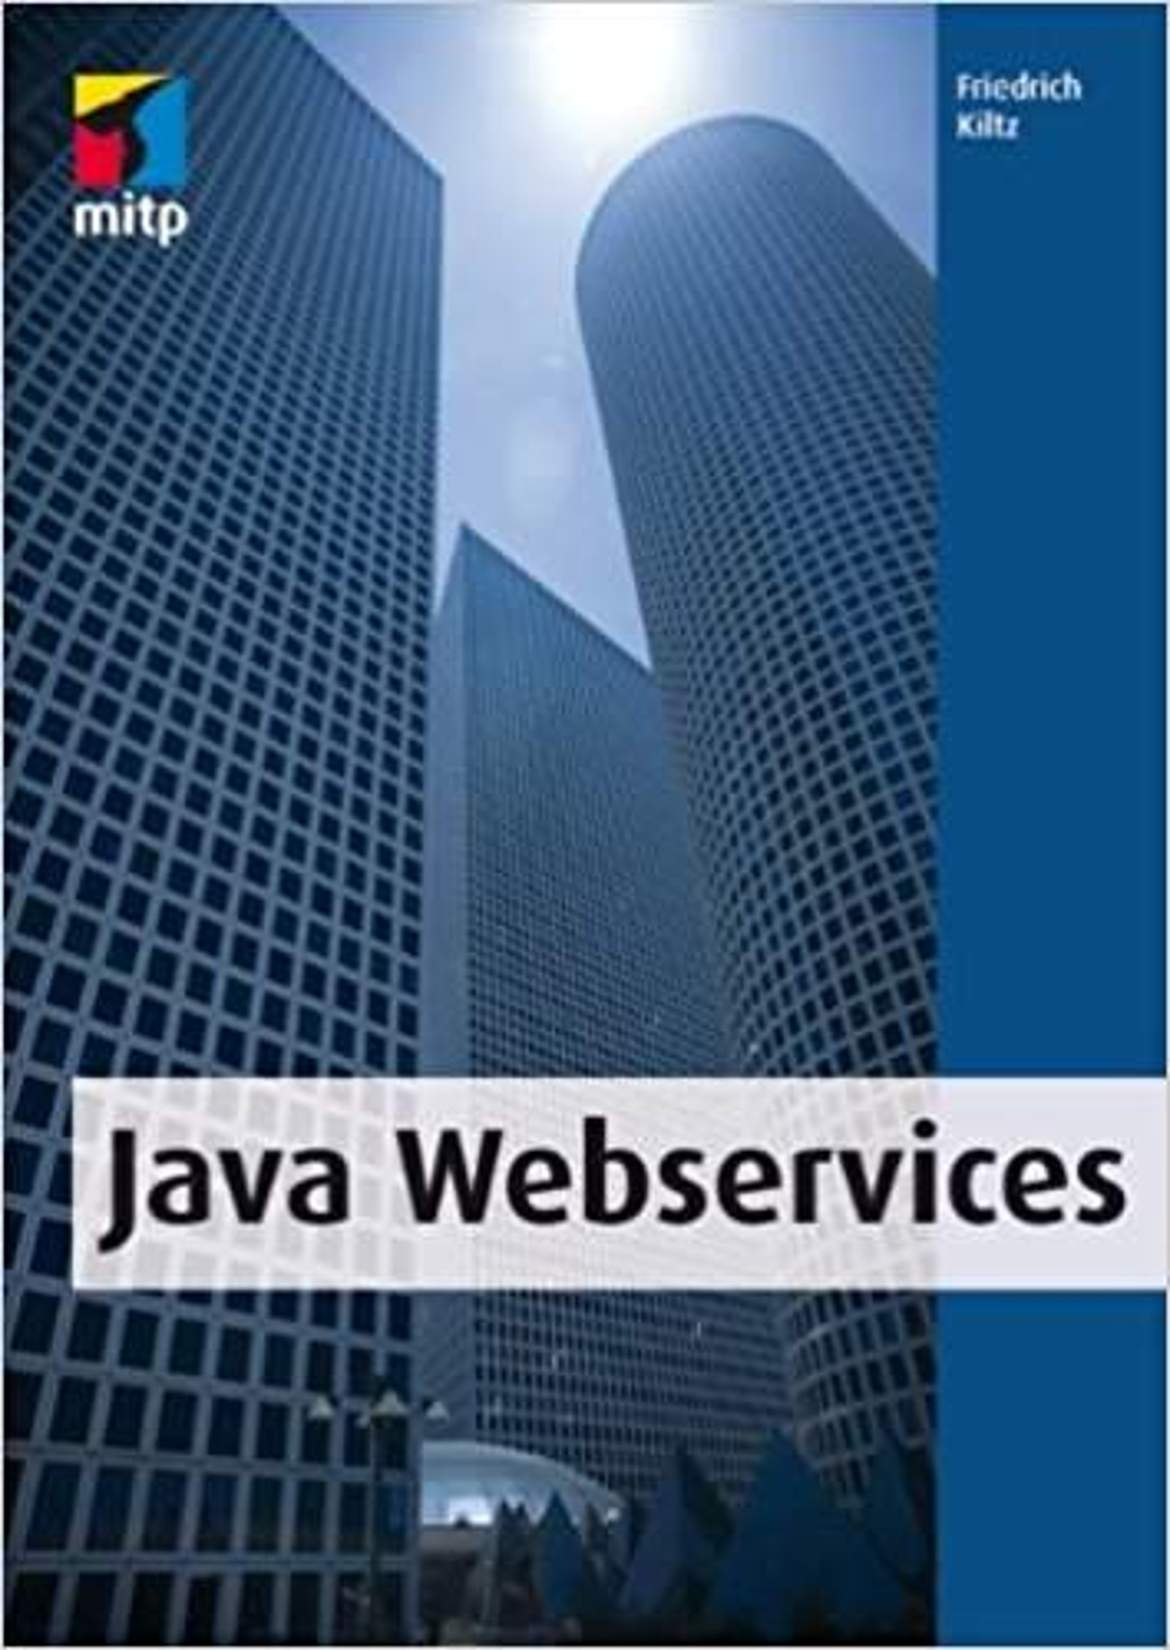 Java Webservices